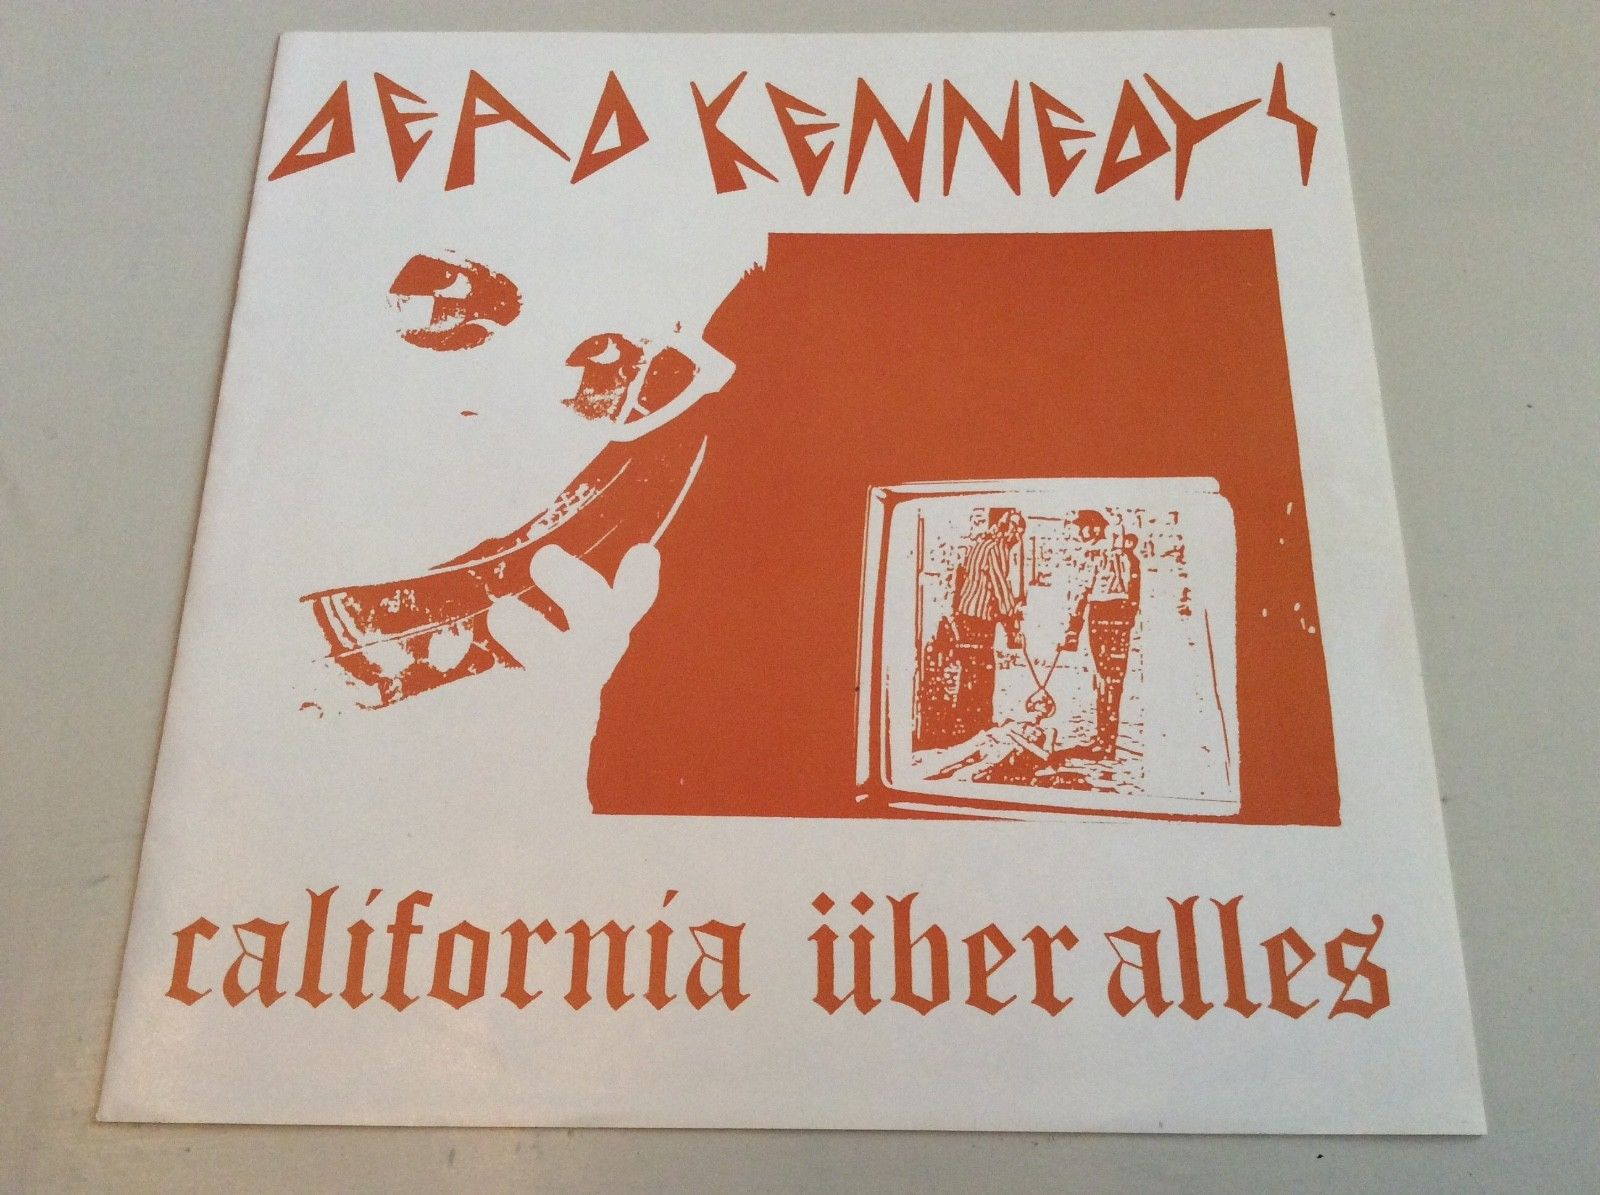 """DEAD KENNEDYS CALIFORNIA UBER ALLES   RARE PUNK 7"""" FOLDOUT PICTURE SLEEVE  1979"""